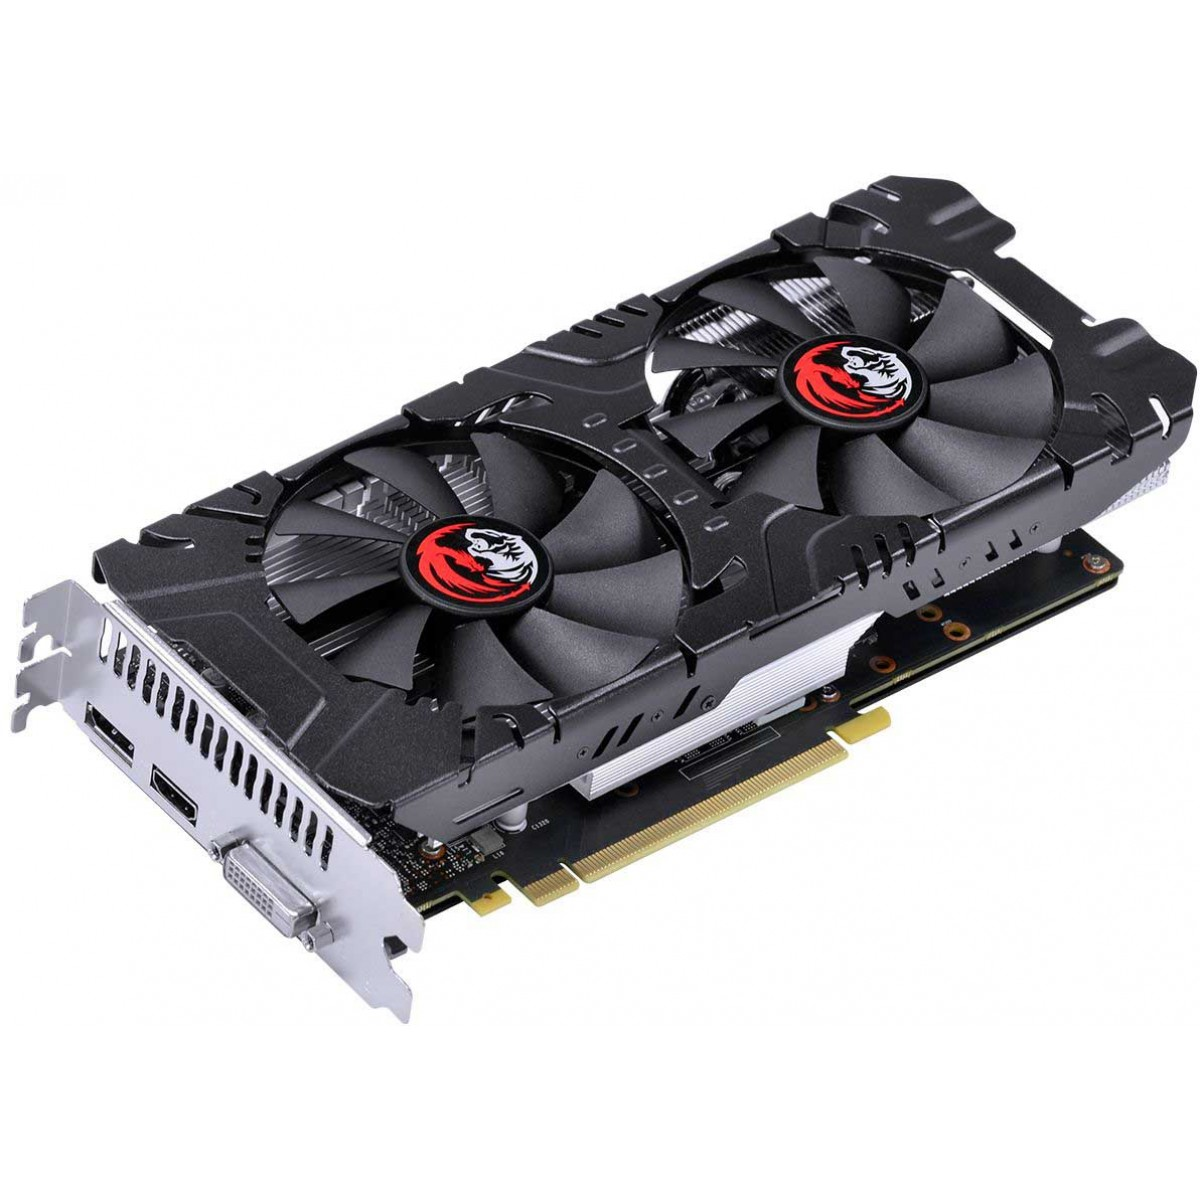 Placa de Vídeo Pcyes Geforce RTX 2060 Dual, 6GB GDDR6, 192Bit, PA206019206G6